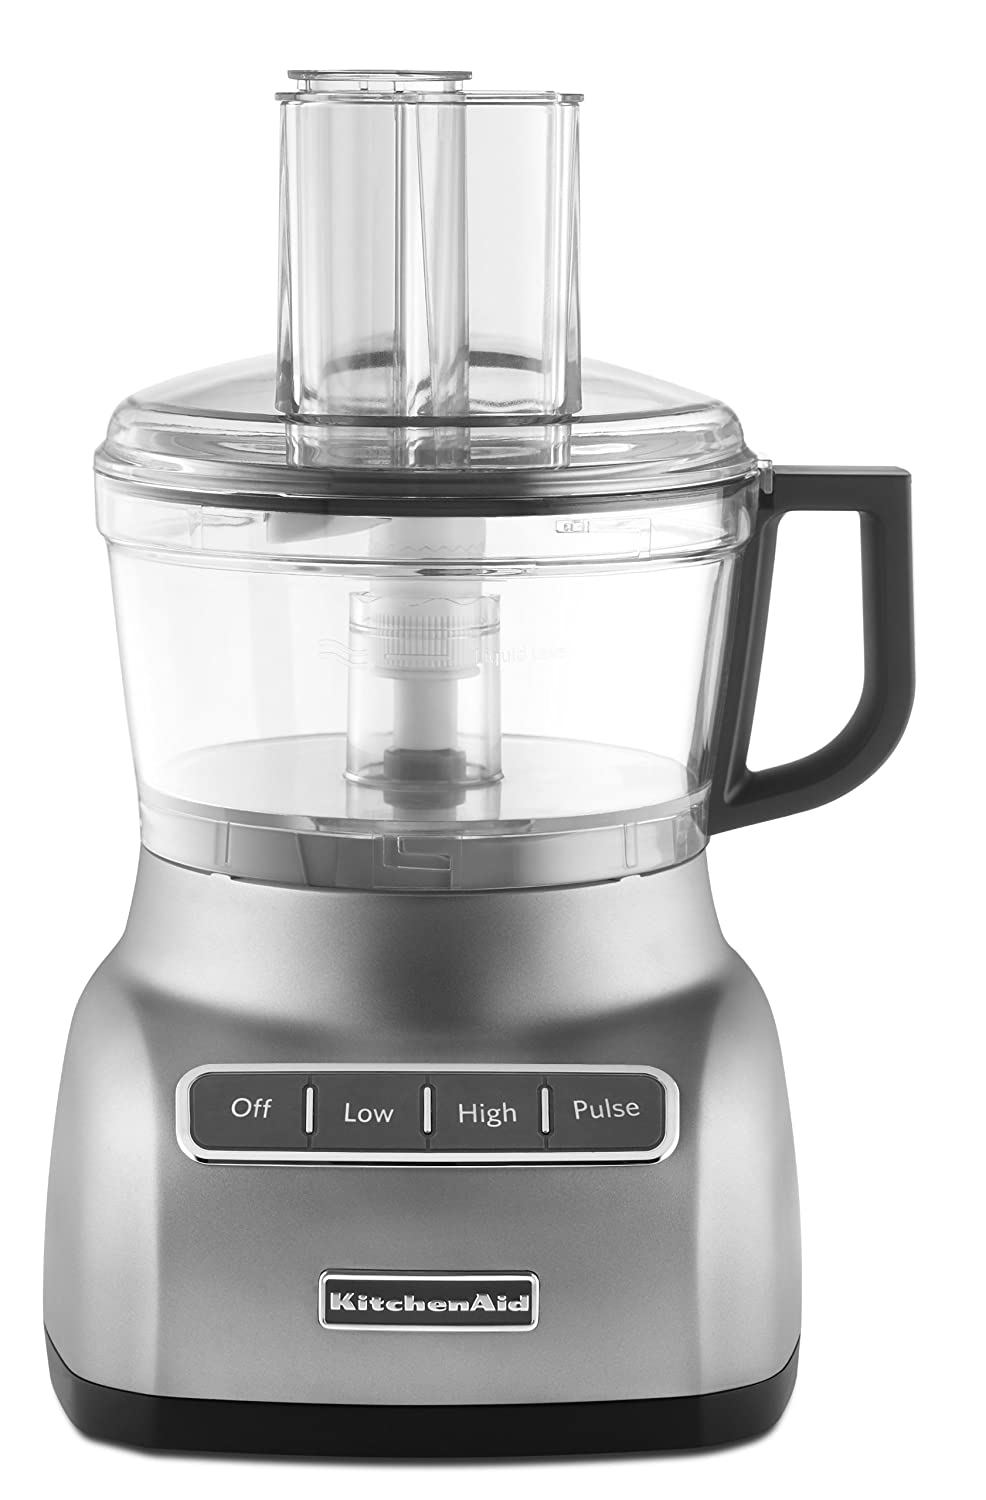 Best Food Processor 2021: The 5 Most Top-Rated And Best Selling Products 4